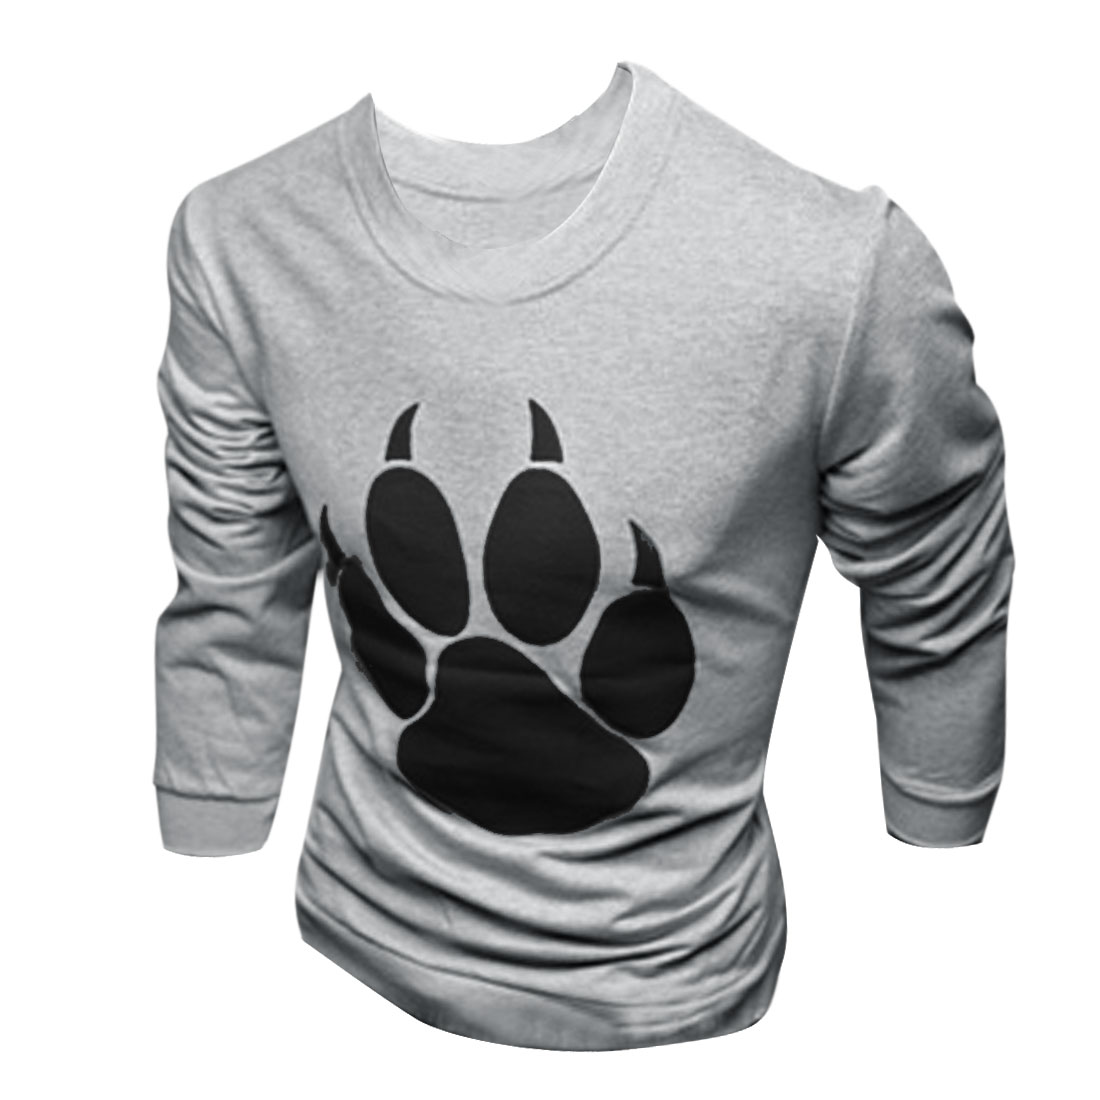 Mens Round Neck Long Sleeve Chic Bear Paw Pattern Light Gray Tee Shirt M